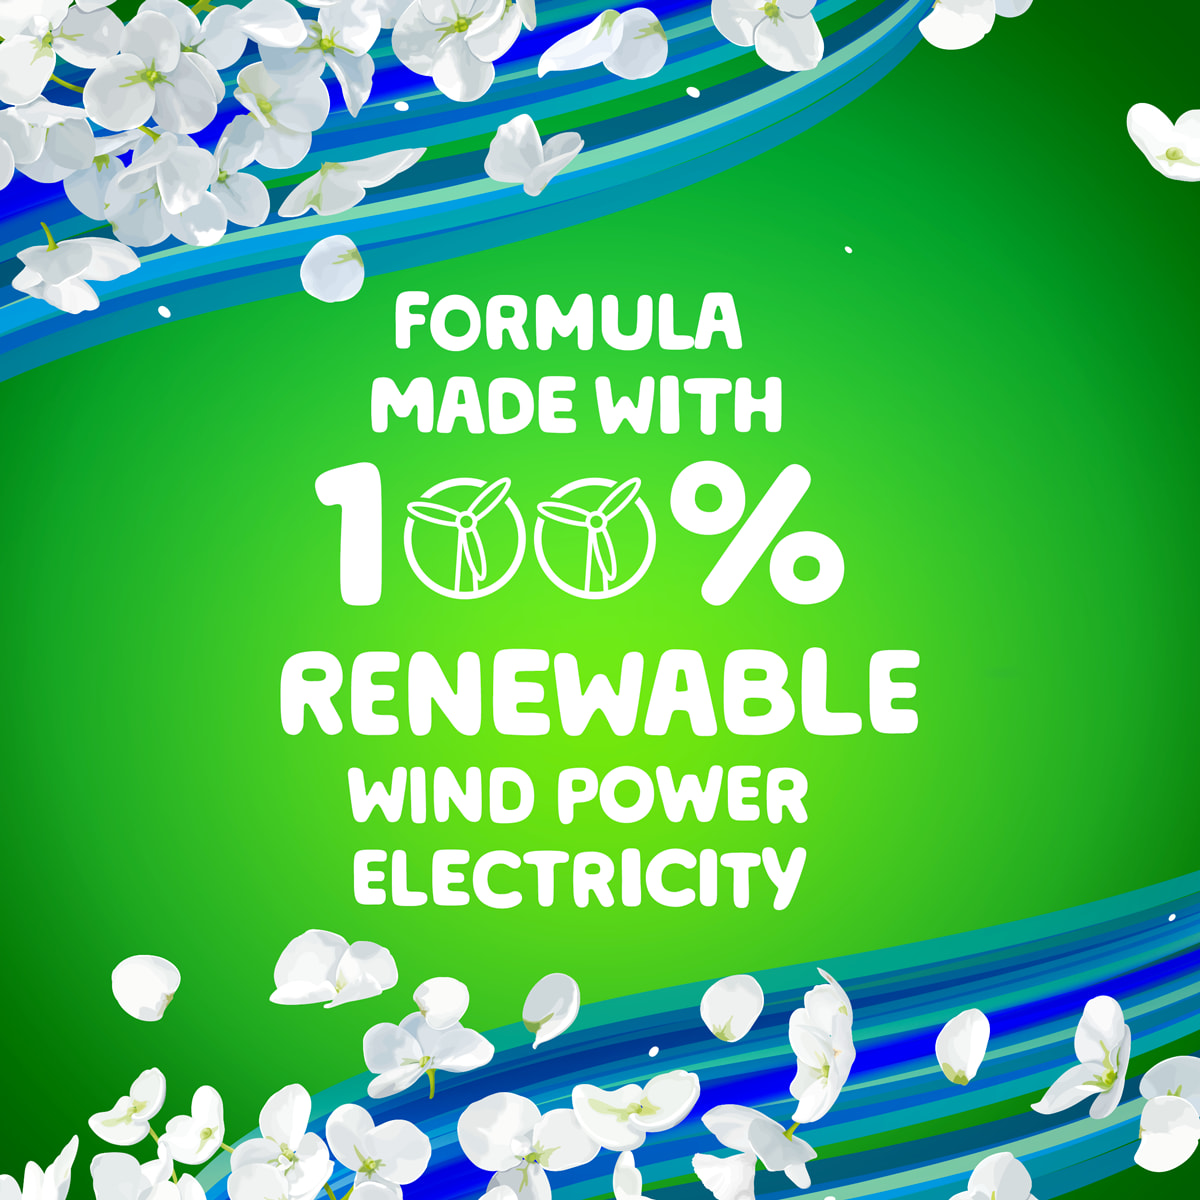 Gain Blissful Breeze product line formula is made with 100% renewable wind power electricity